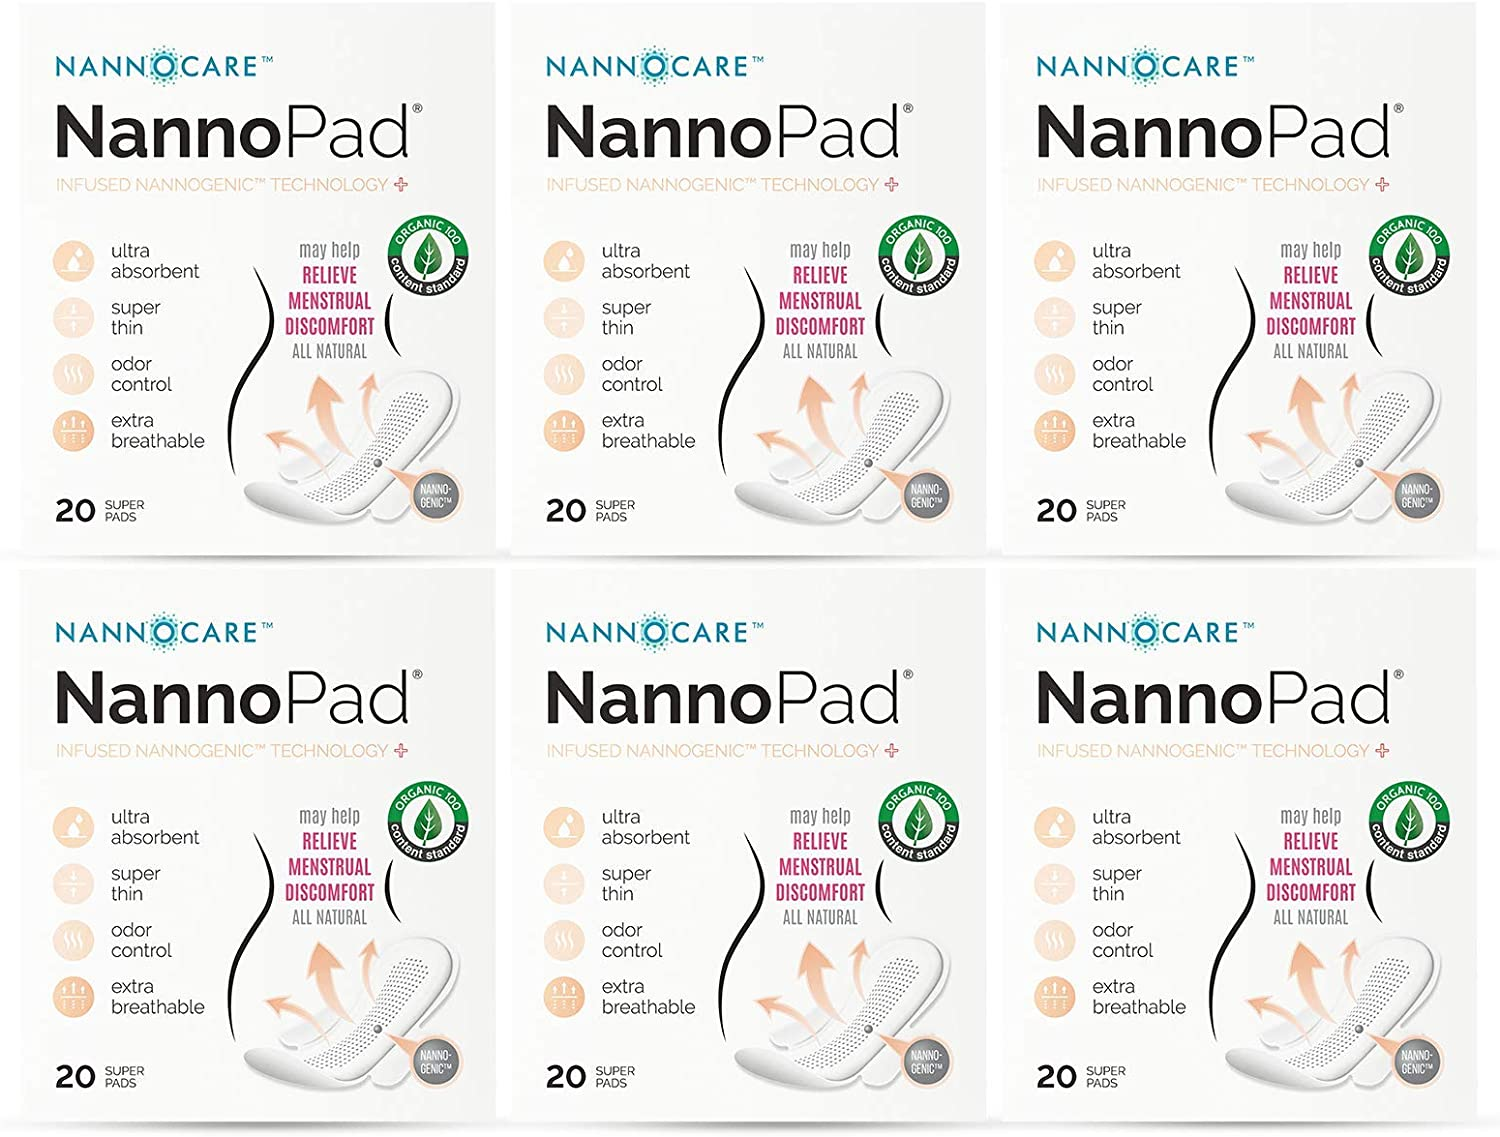 NannoPad Super - Certified Organic Cotton - Naturally Relieve Your Discomfort - No Fragrances, Chemicals or Dyes - Odor-Control and Breathable 6 Pack (120 Pads)